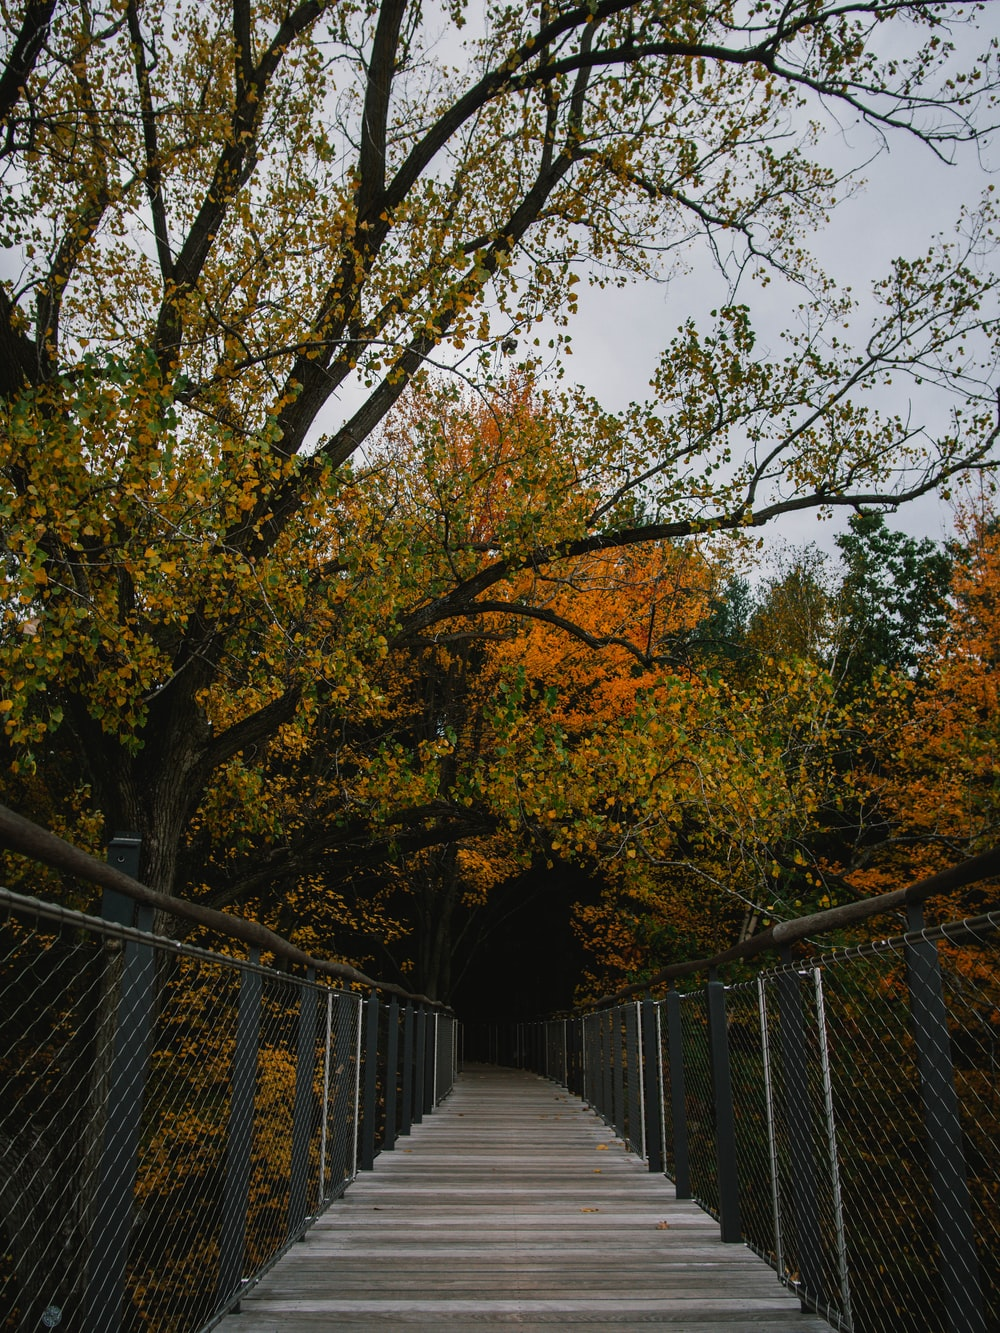 brown trees on gray concrete pathway